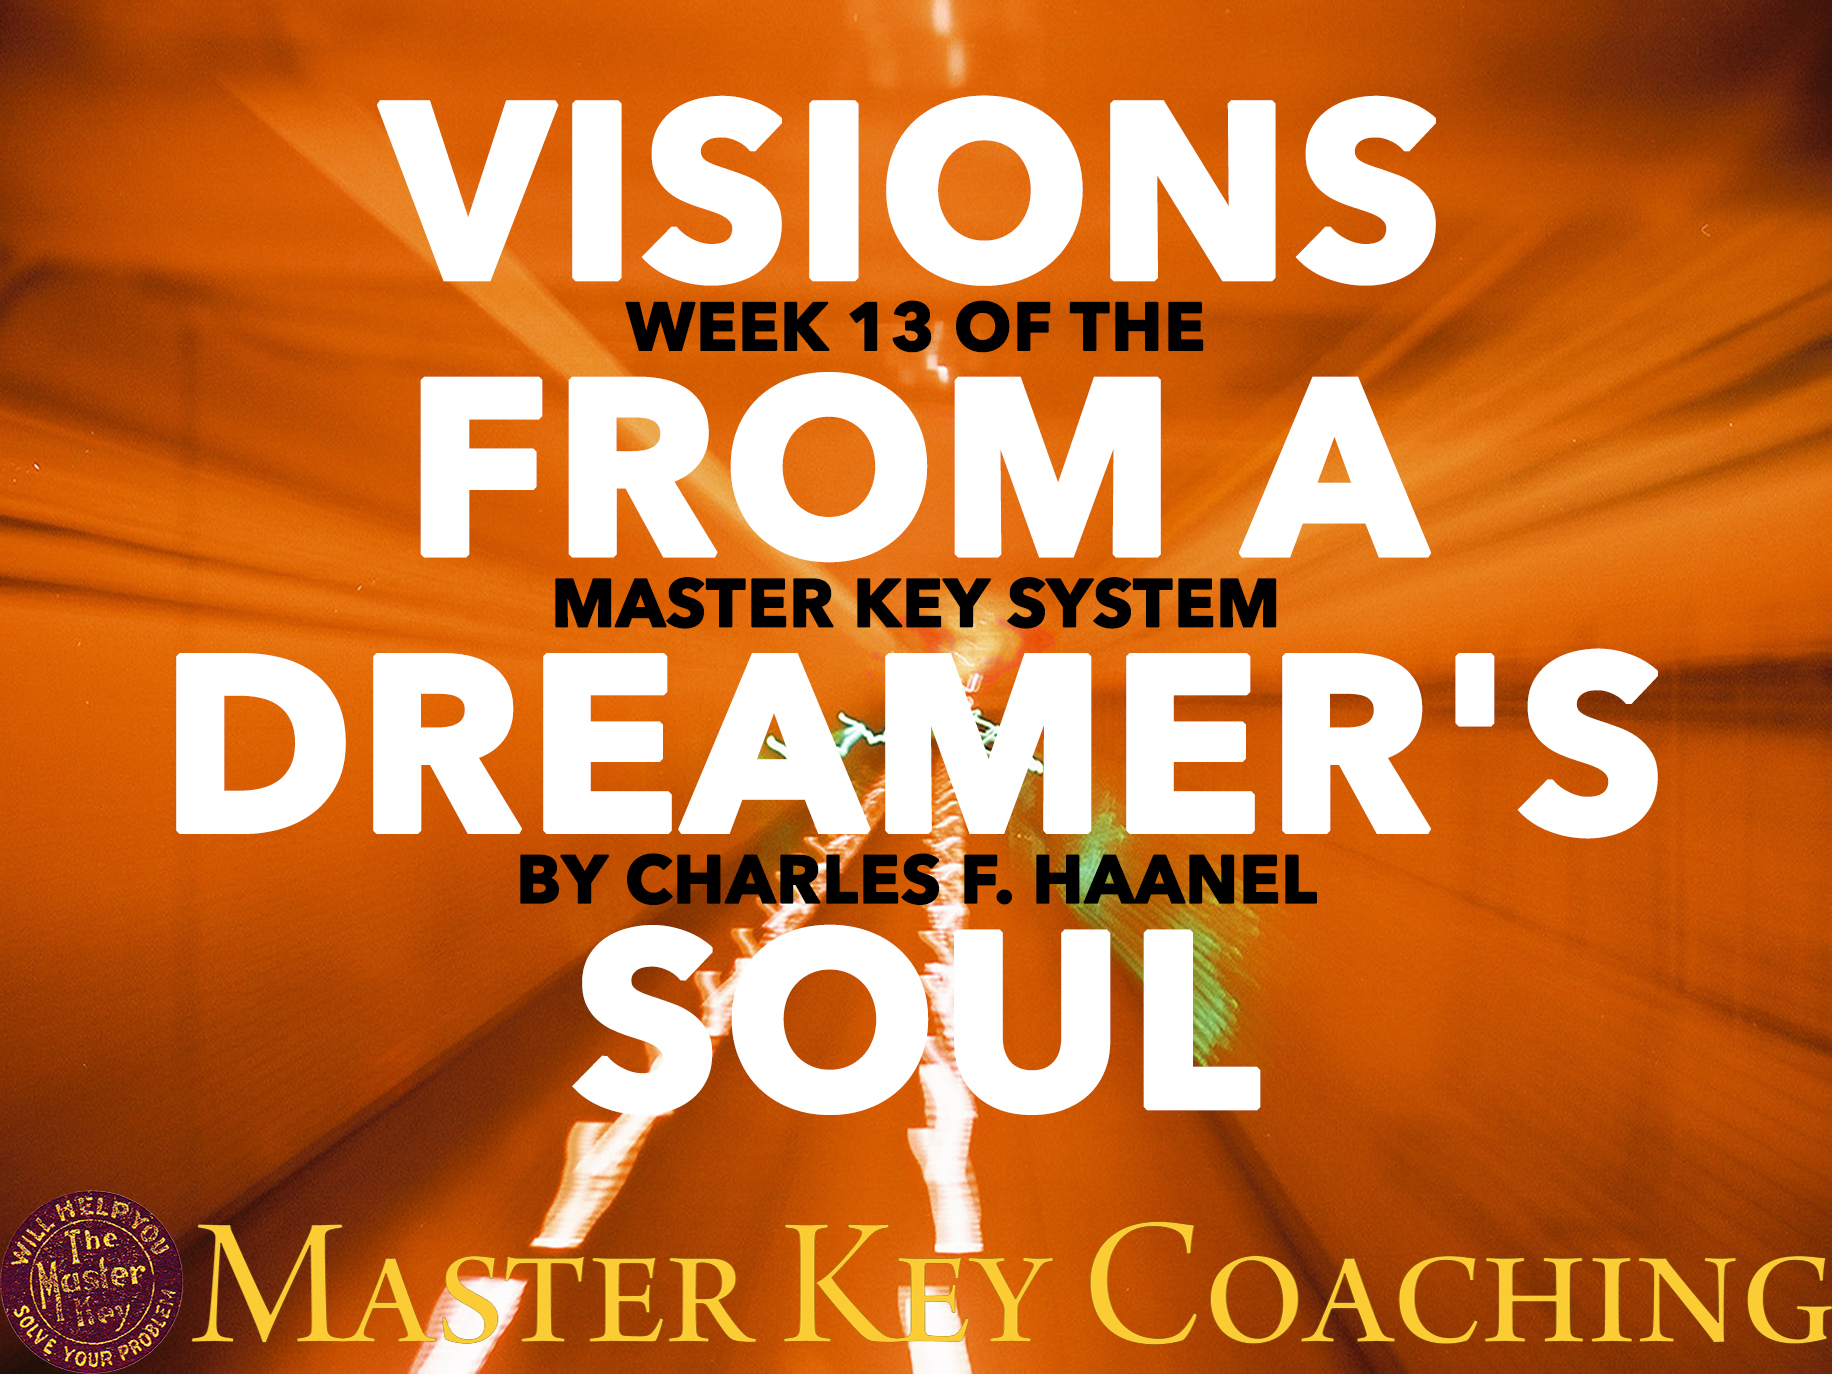 Visions from a Dreamer's Soul: Week 13 of The Master Key System by Charles F. Haanel